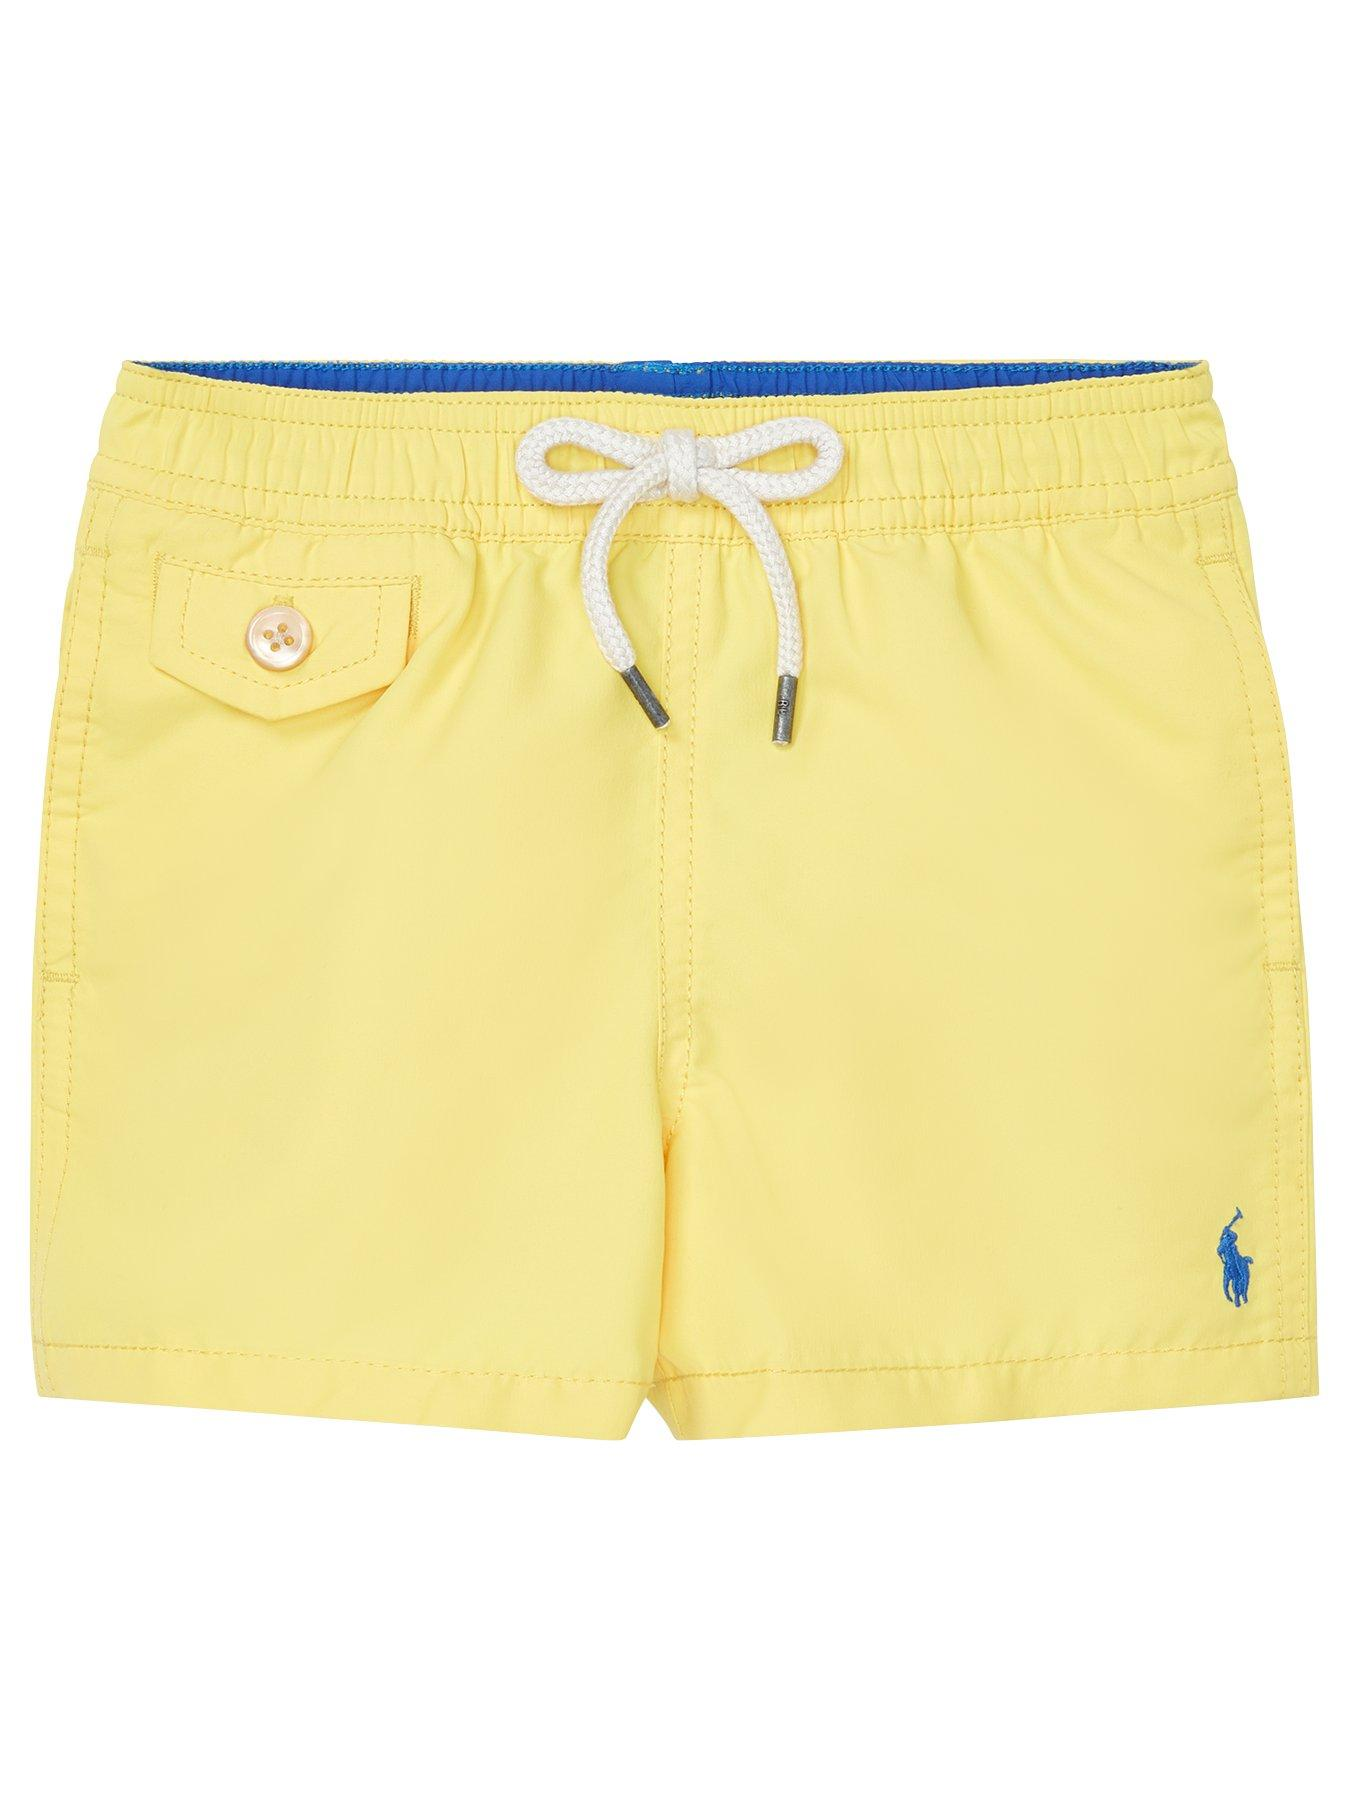 Boys Ralph Lauren Denim Shorts 12 Months Customers First